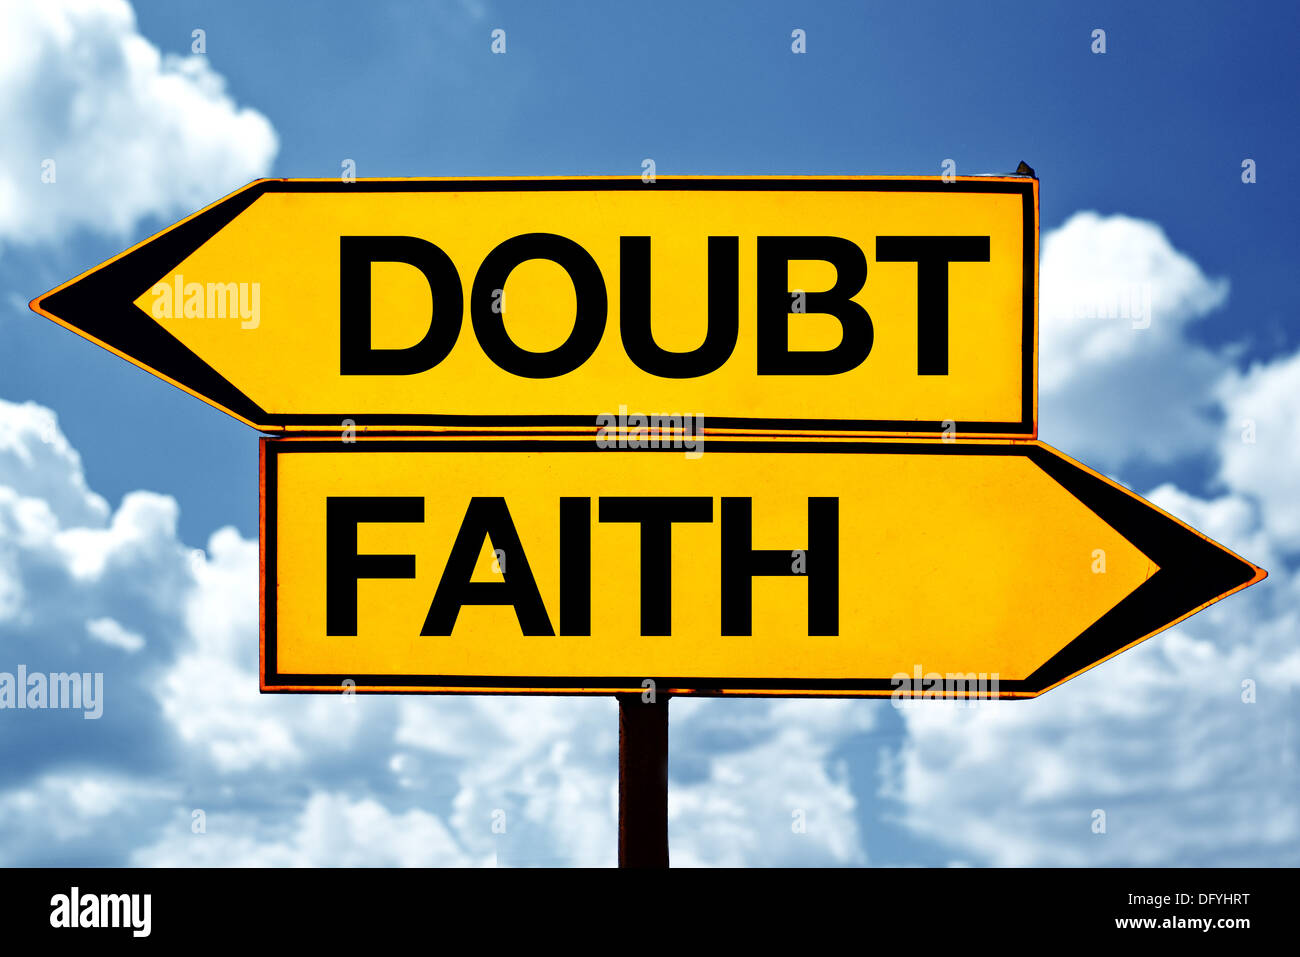 Doubt or faith, opposite signs. Two blank opposite signs against blue sky background. - Stock Image